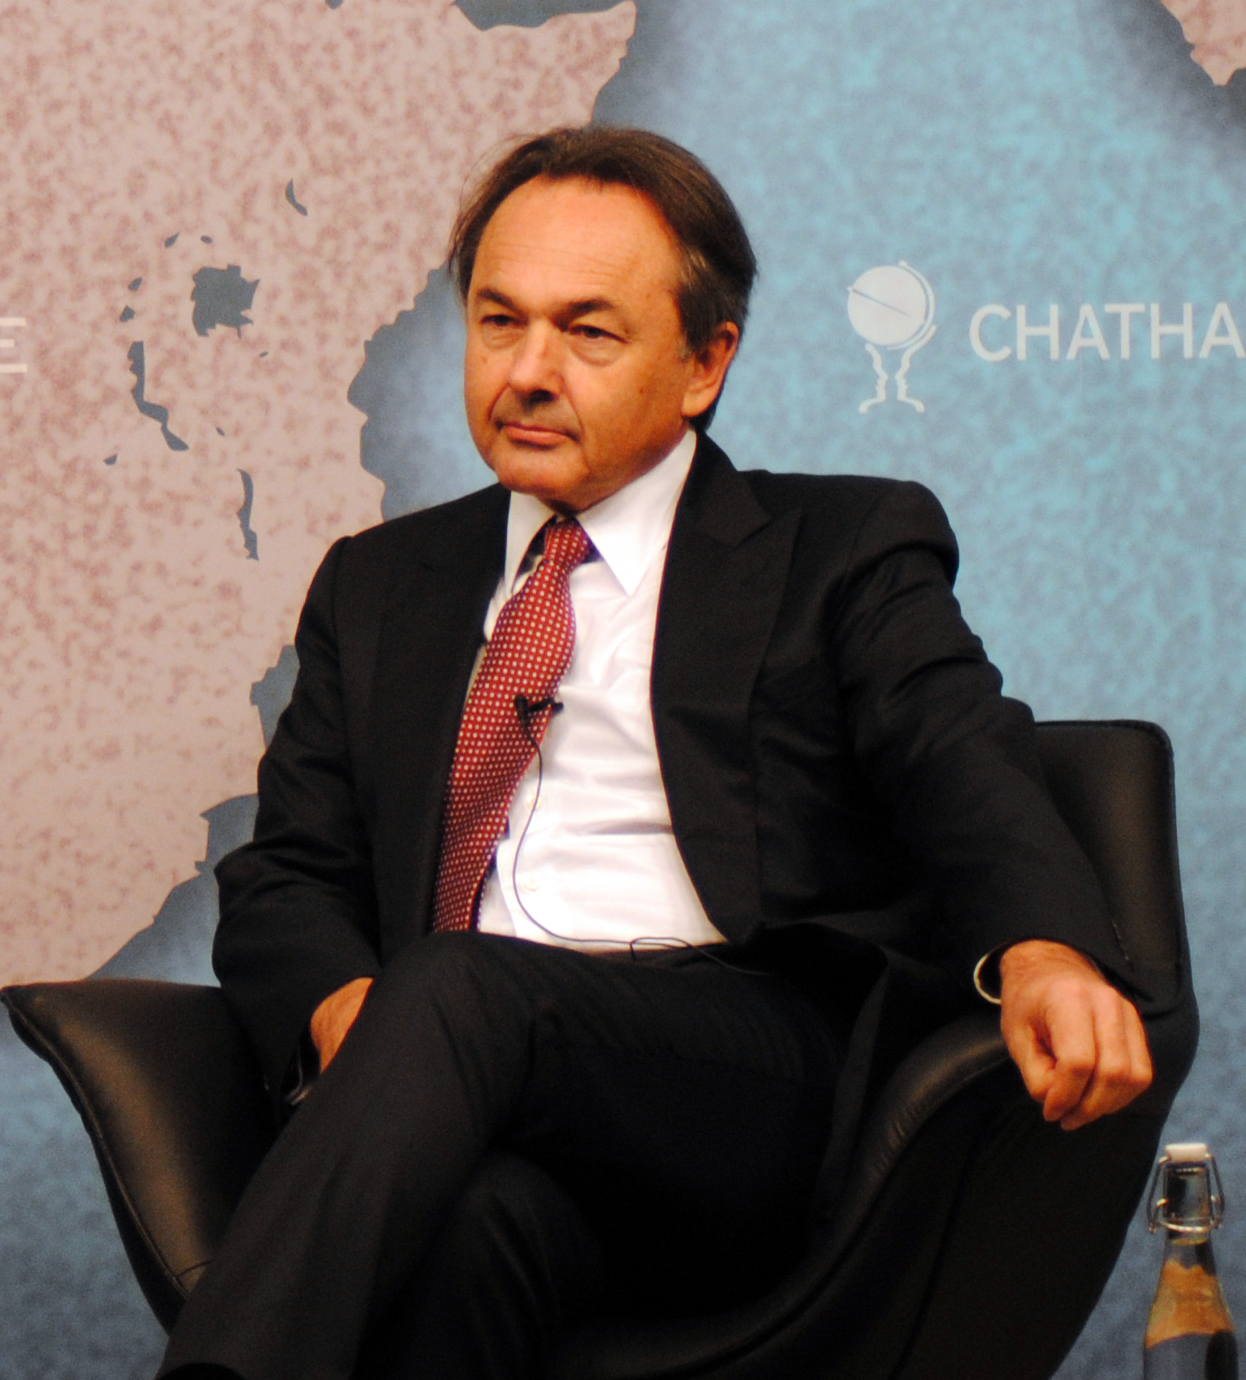 Gilles Kepel at [[Chatham House]] in 2012